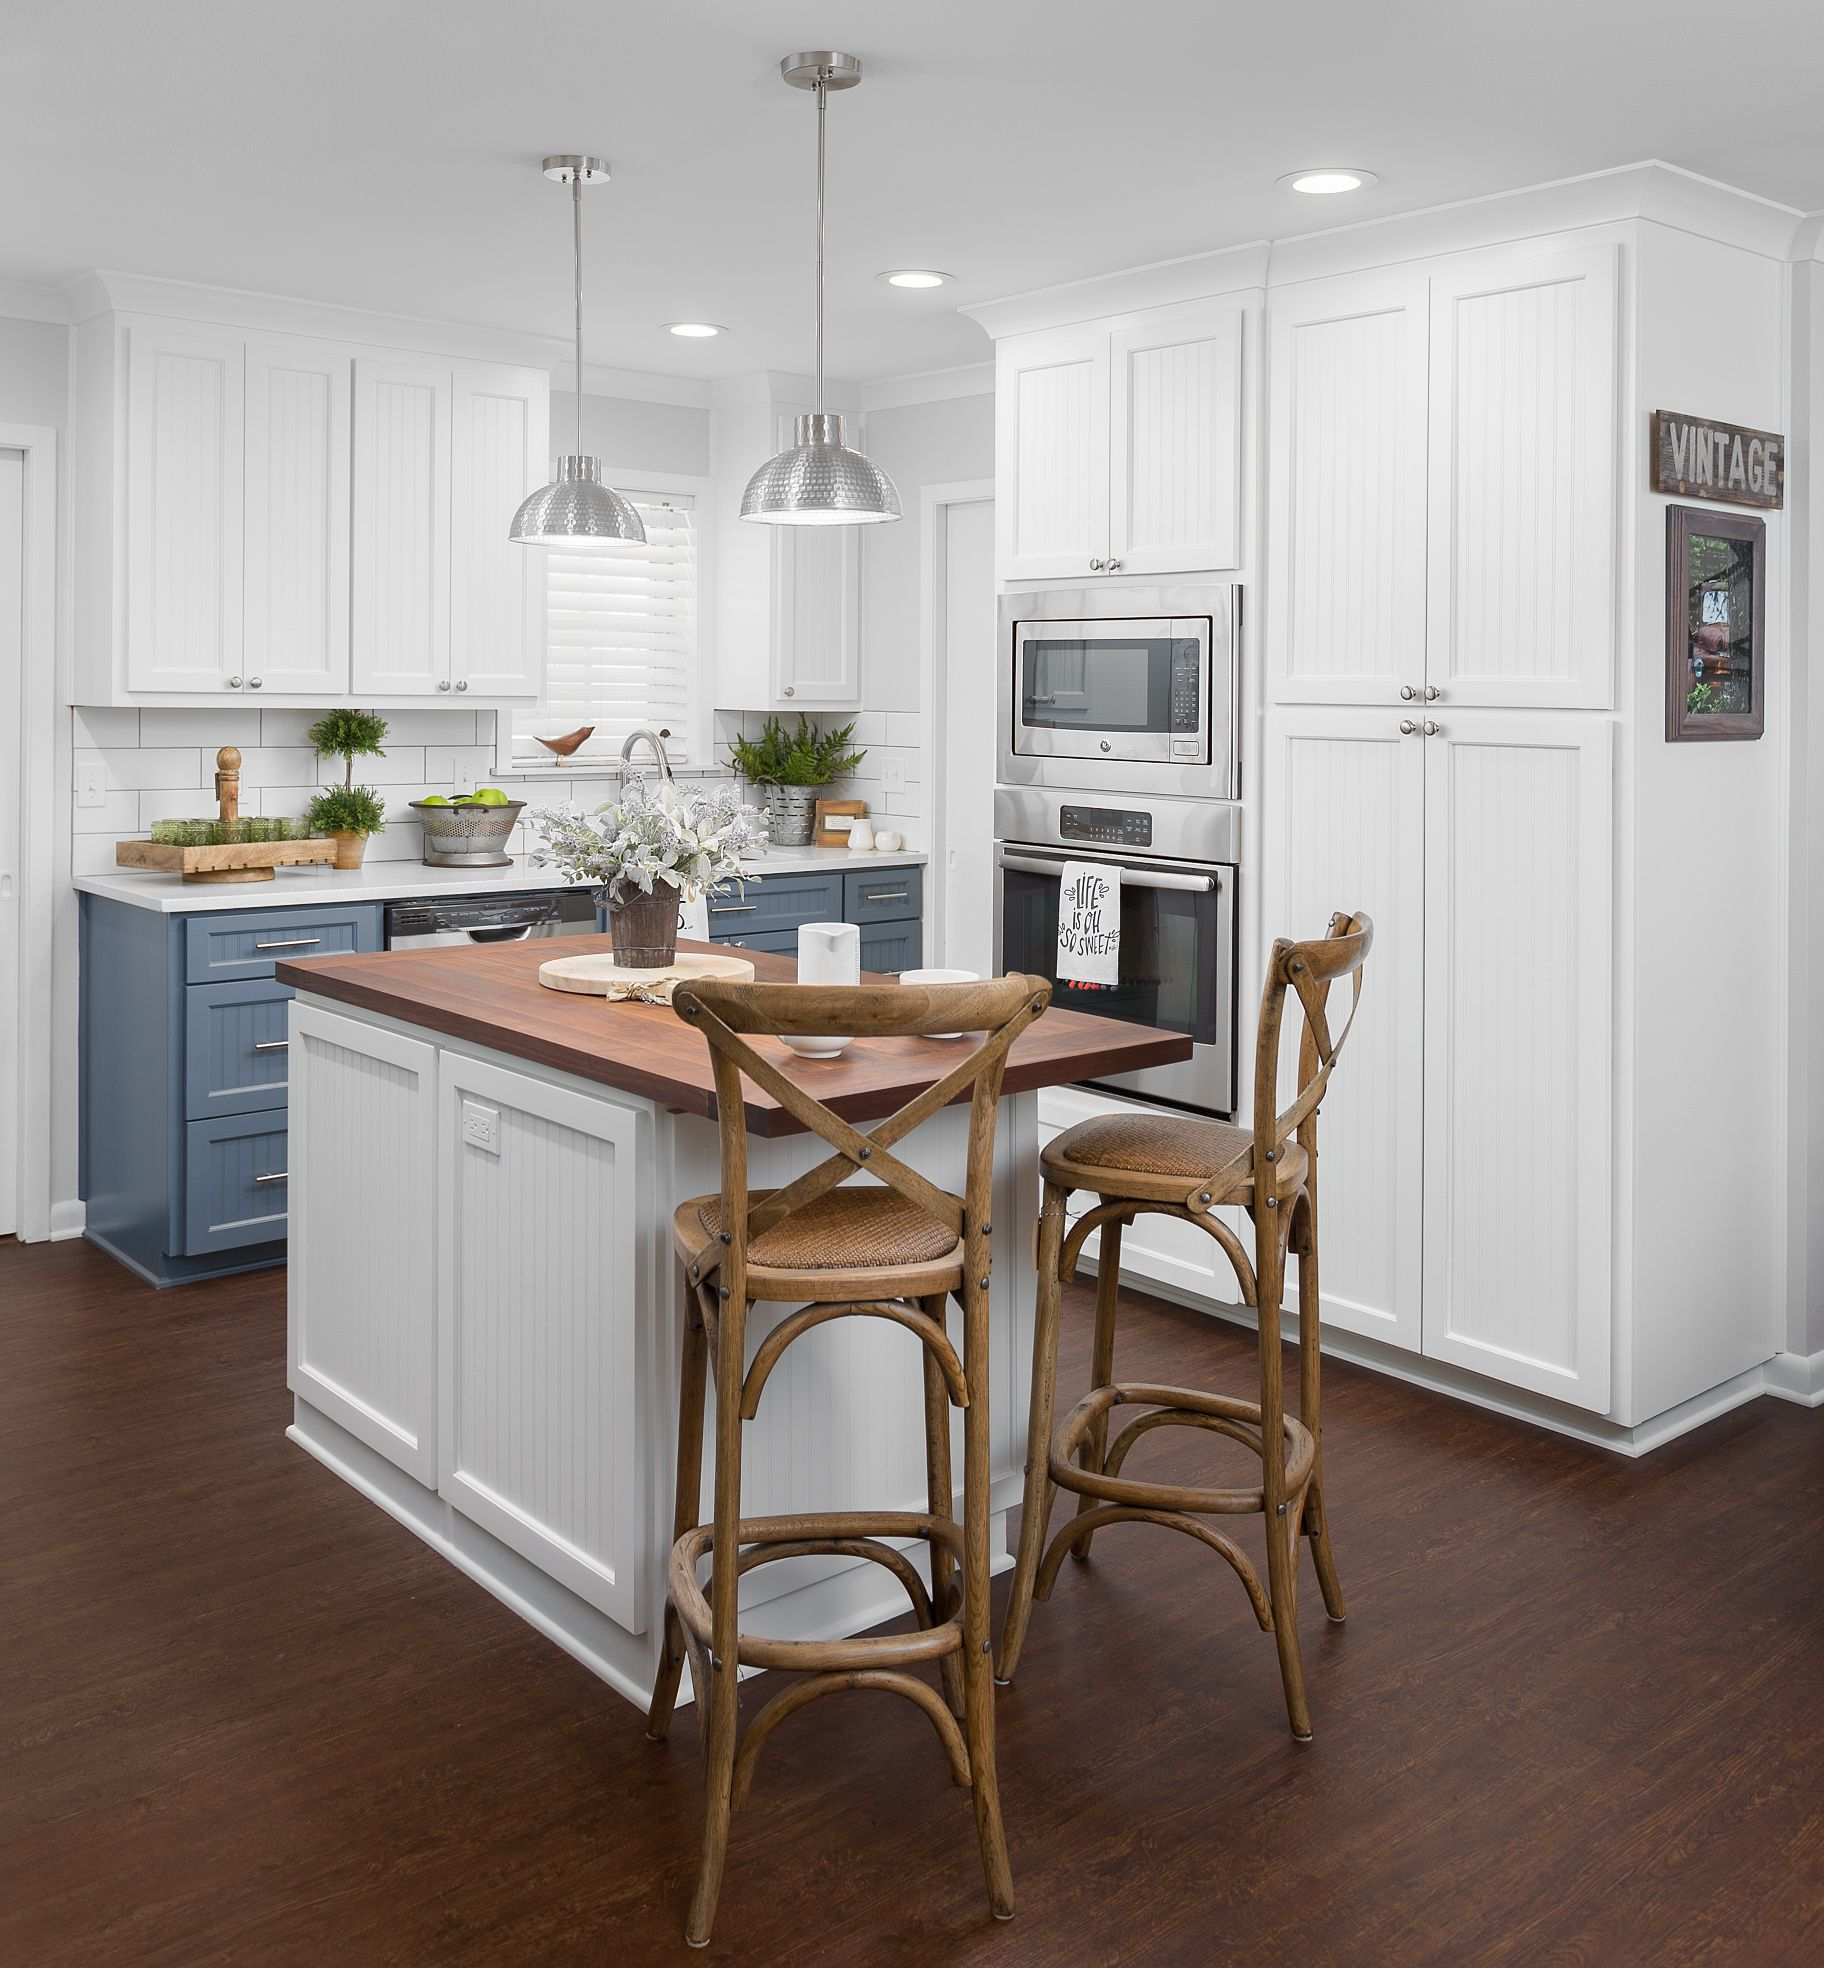 Walnut Butcher Block Kitchen Island And White Beadboard Custom Cabinets